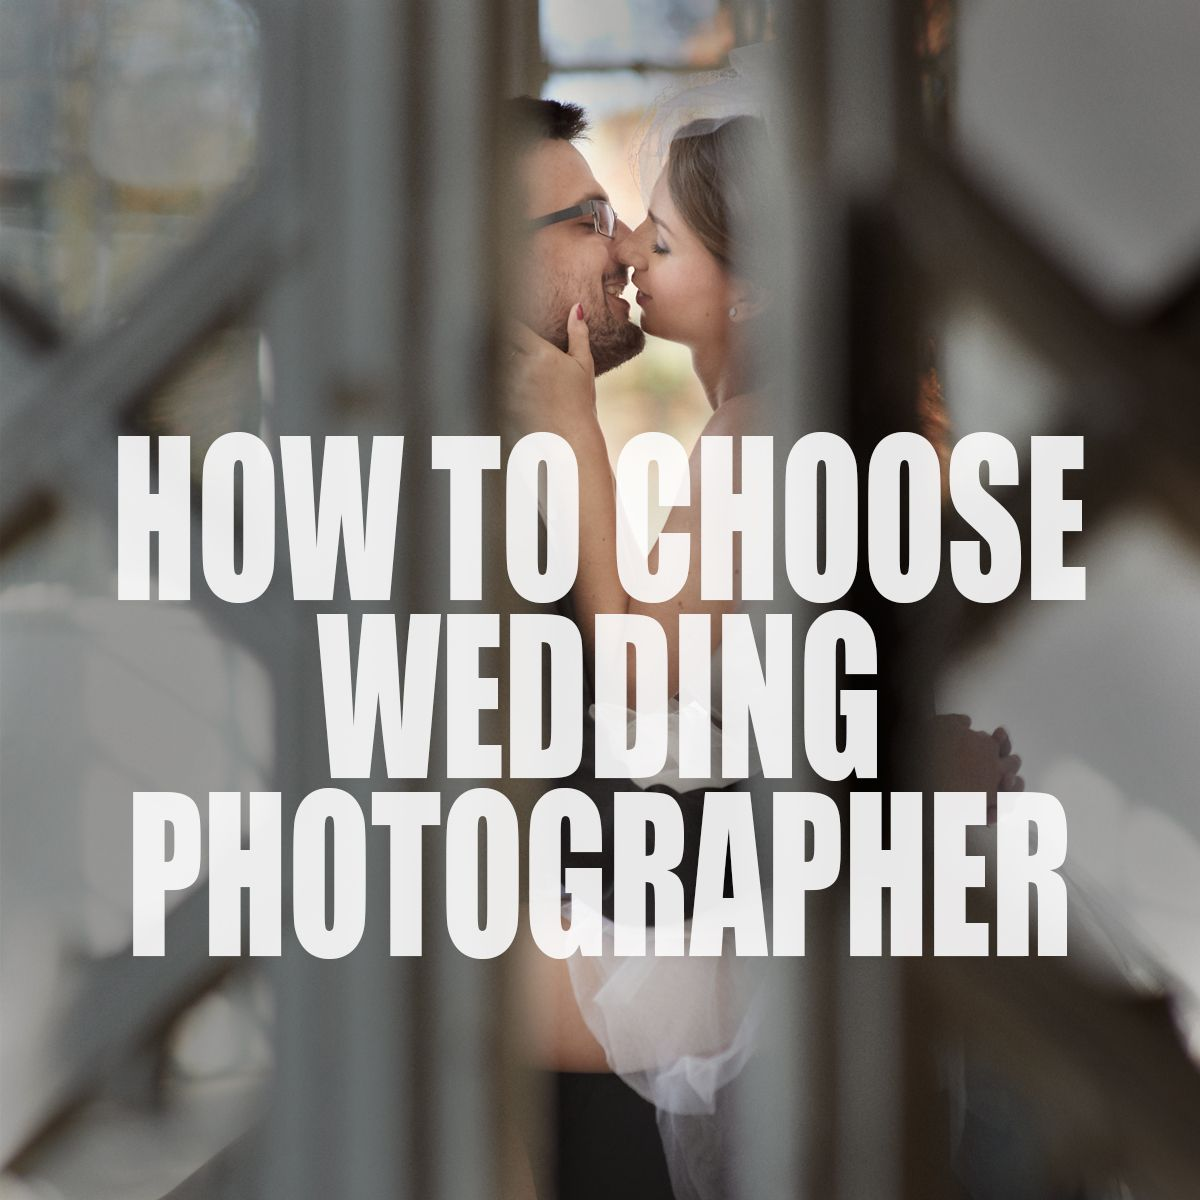 How to choose your wedding photographer properly and get the awesome photos for life to cherish?  Box of Love - wedding photographer from West Midlands (Cheshire, Stoke etc.) shares some hints!  http://www.boxoflove.eu/choose-wedding-photographer/